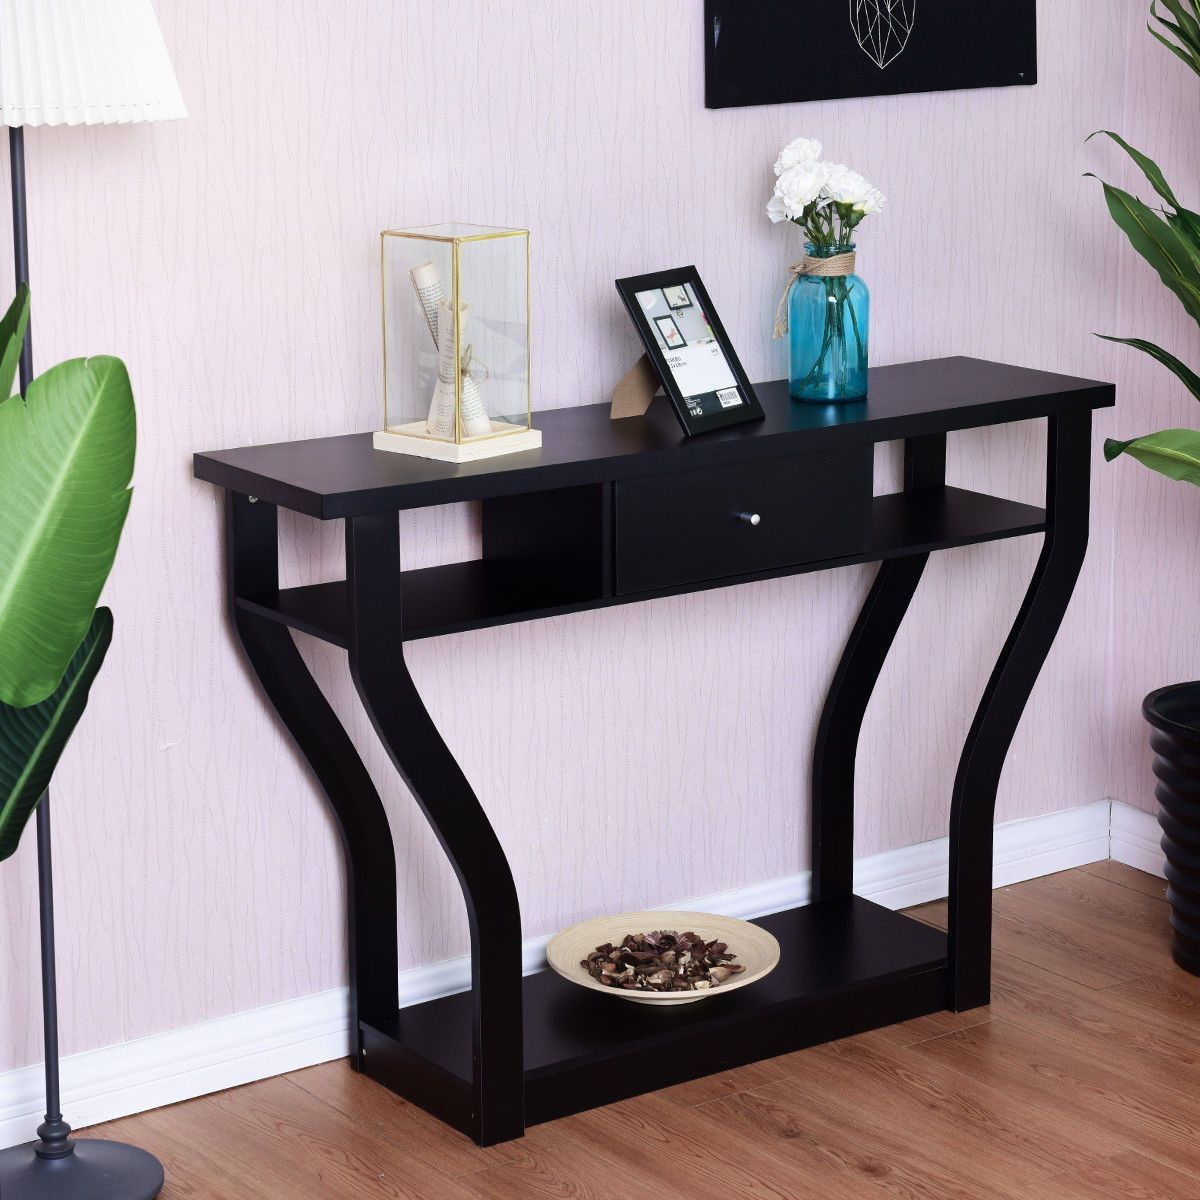 Modern Entryway Accent Console Table In 2020